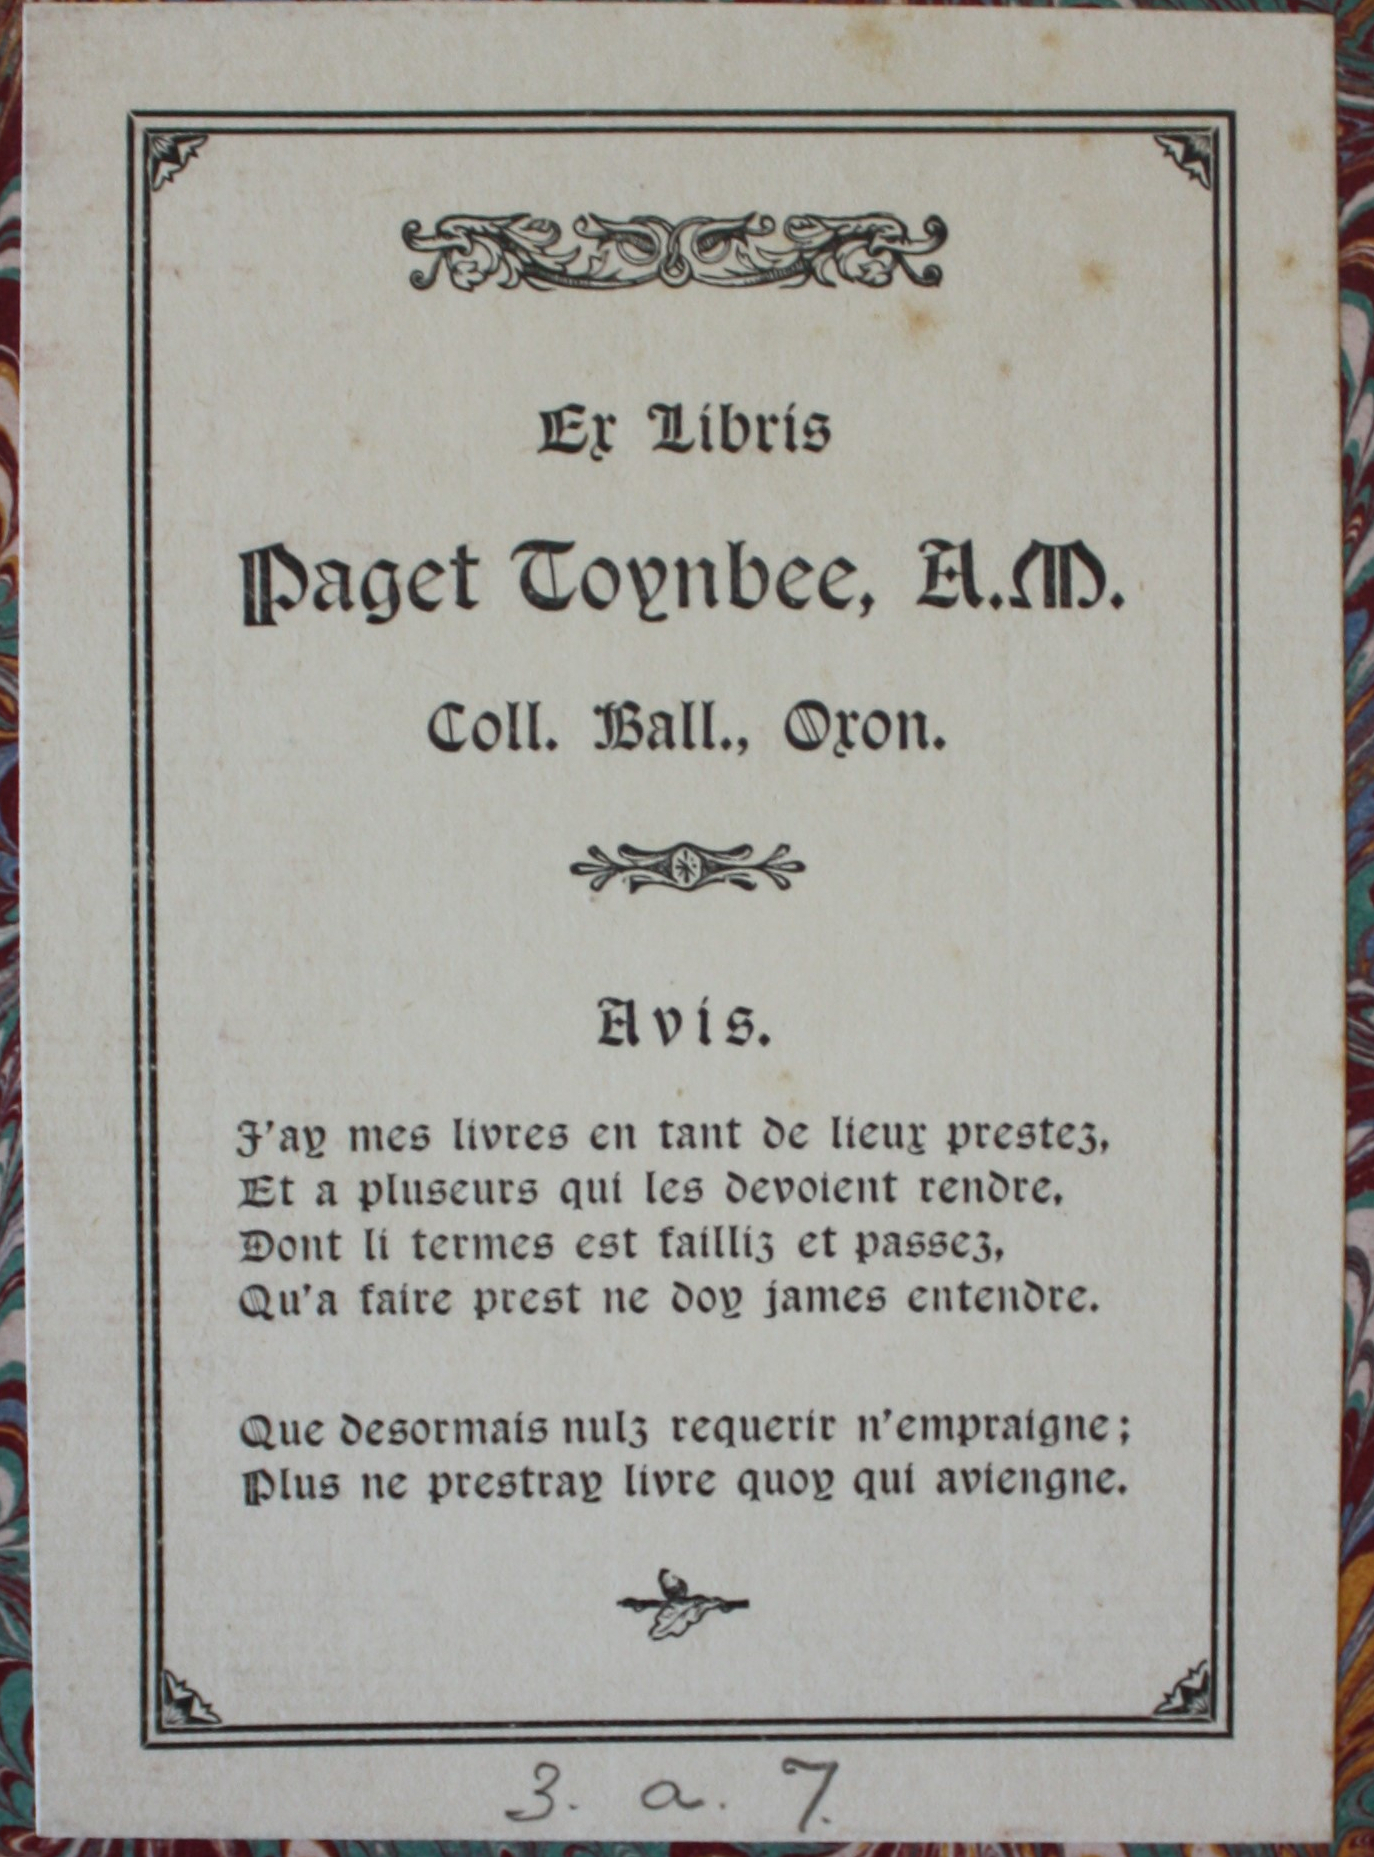 Paget Toynbee's bookplate, in Latin and French